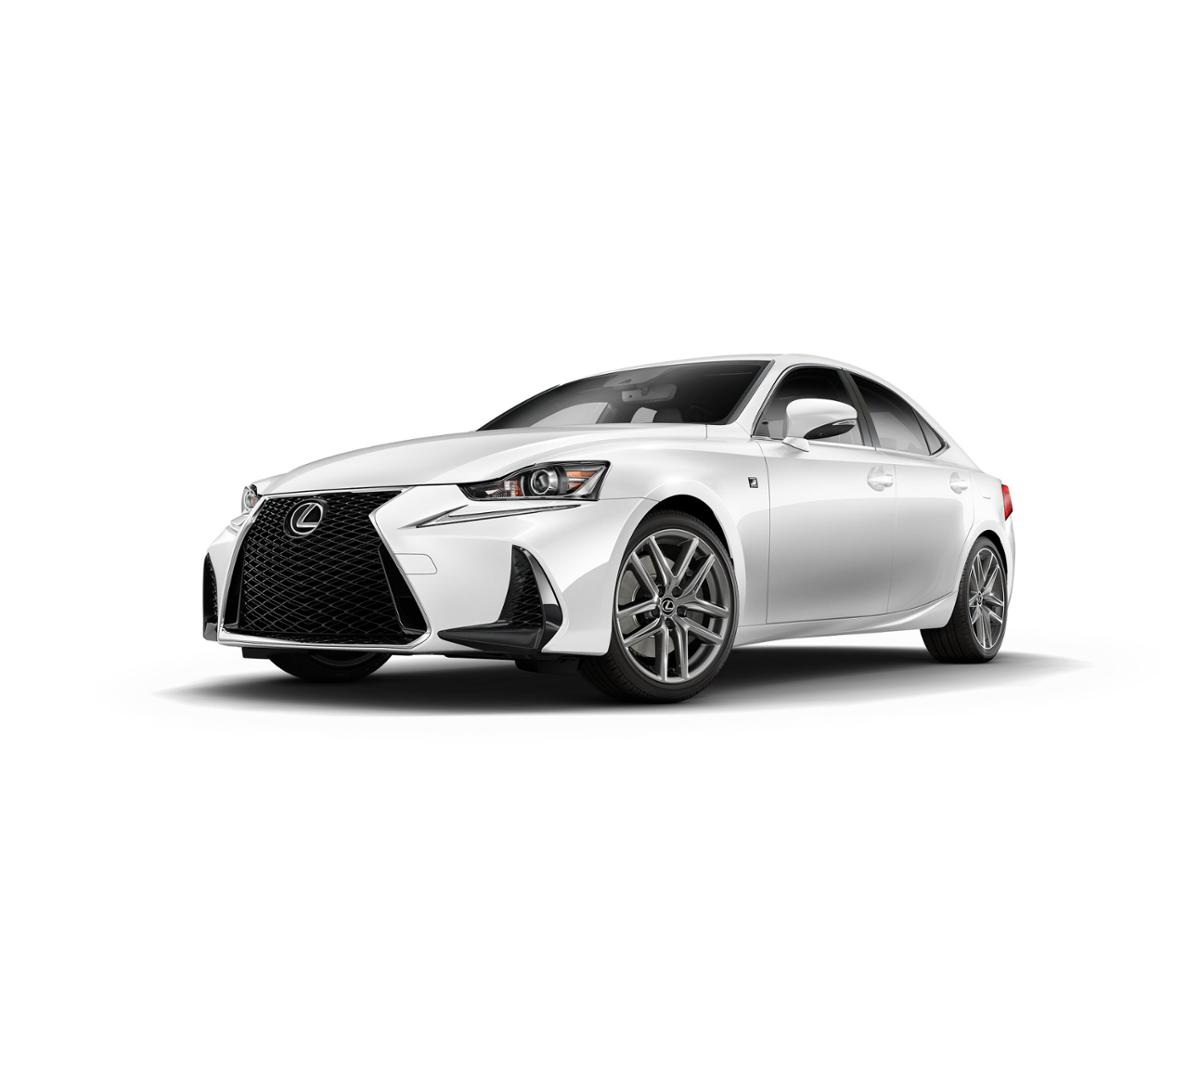 2019 Lexus IS 300 Vehicle Photo in Mission Viejo, CA 92692